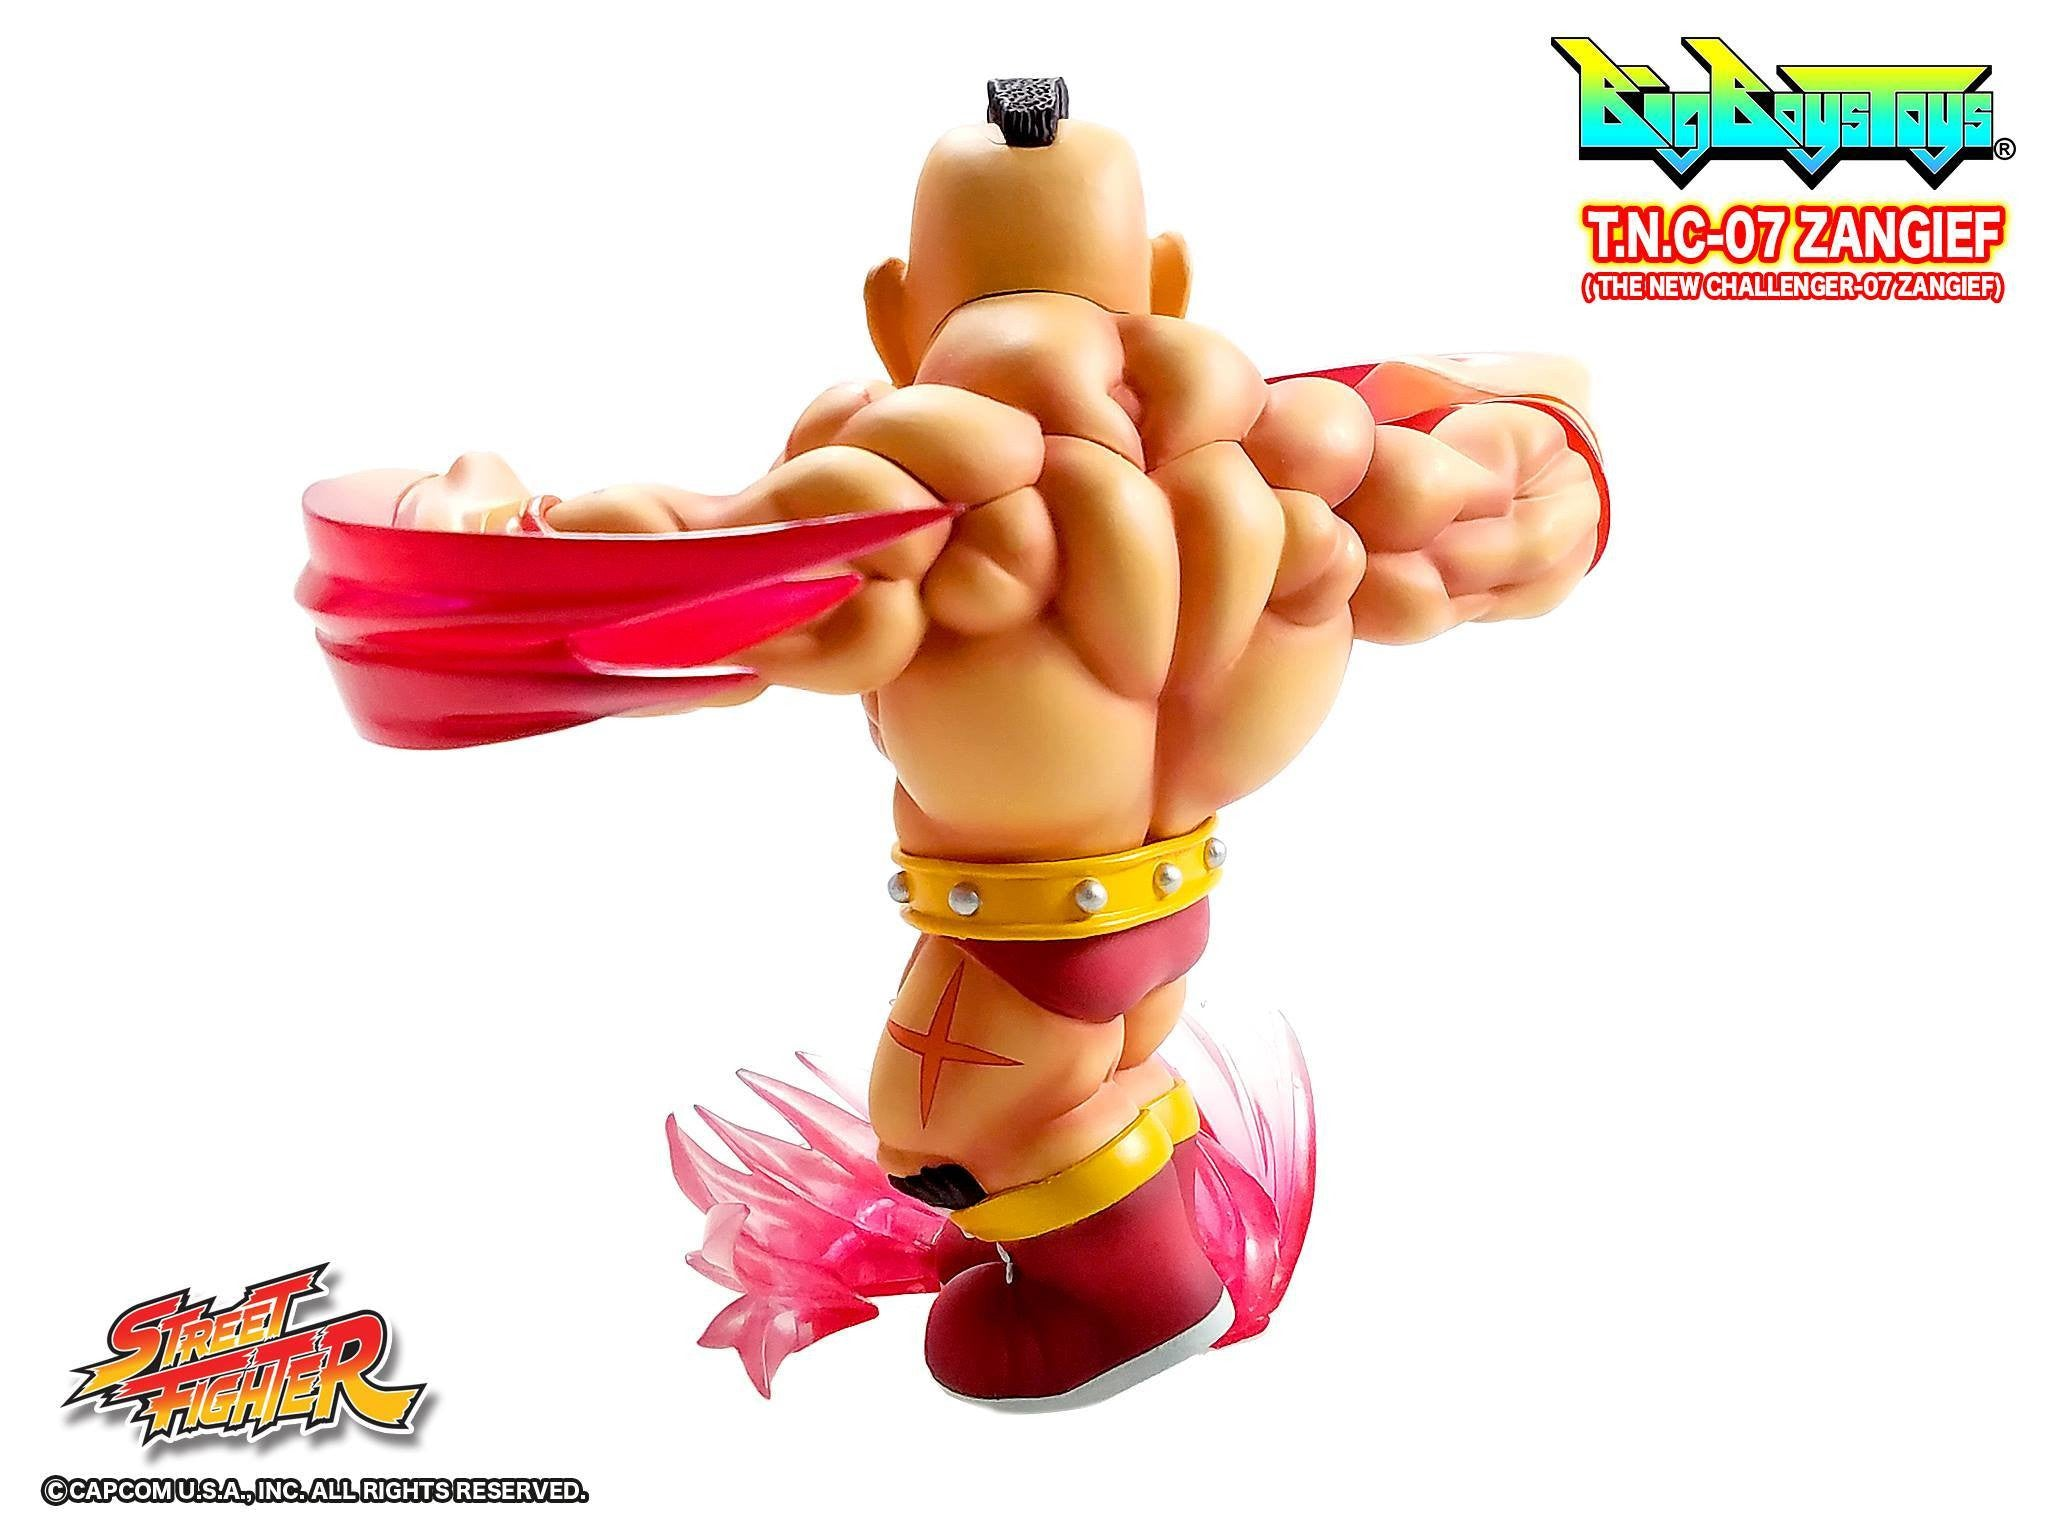 Bigboystoys - The New Challenger Series T.N.C 07 - Zangief